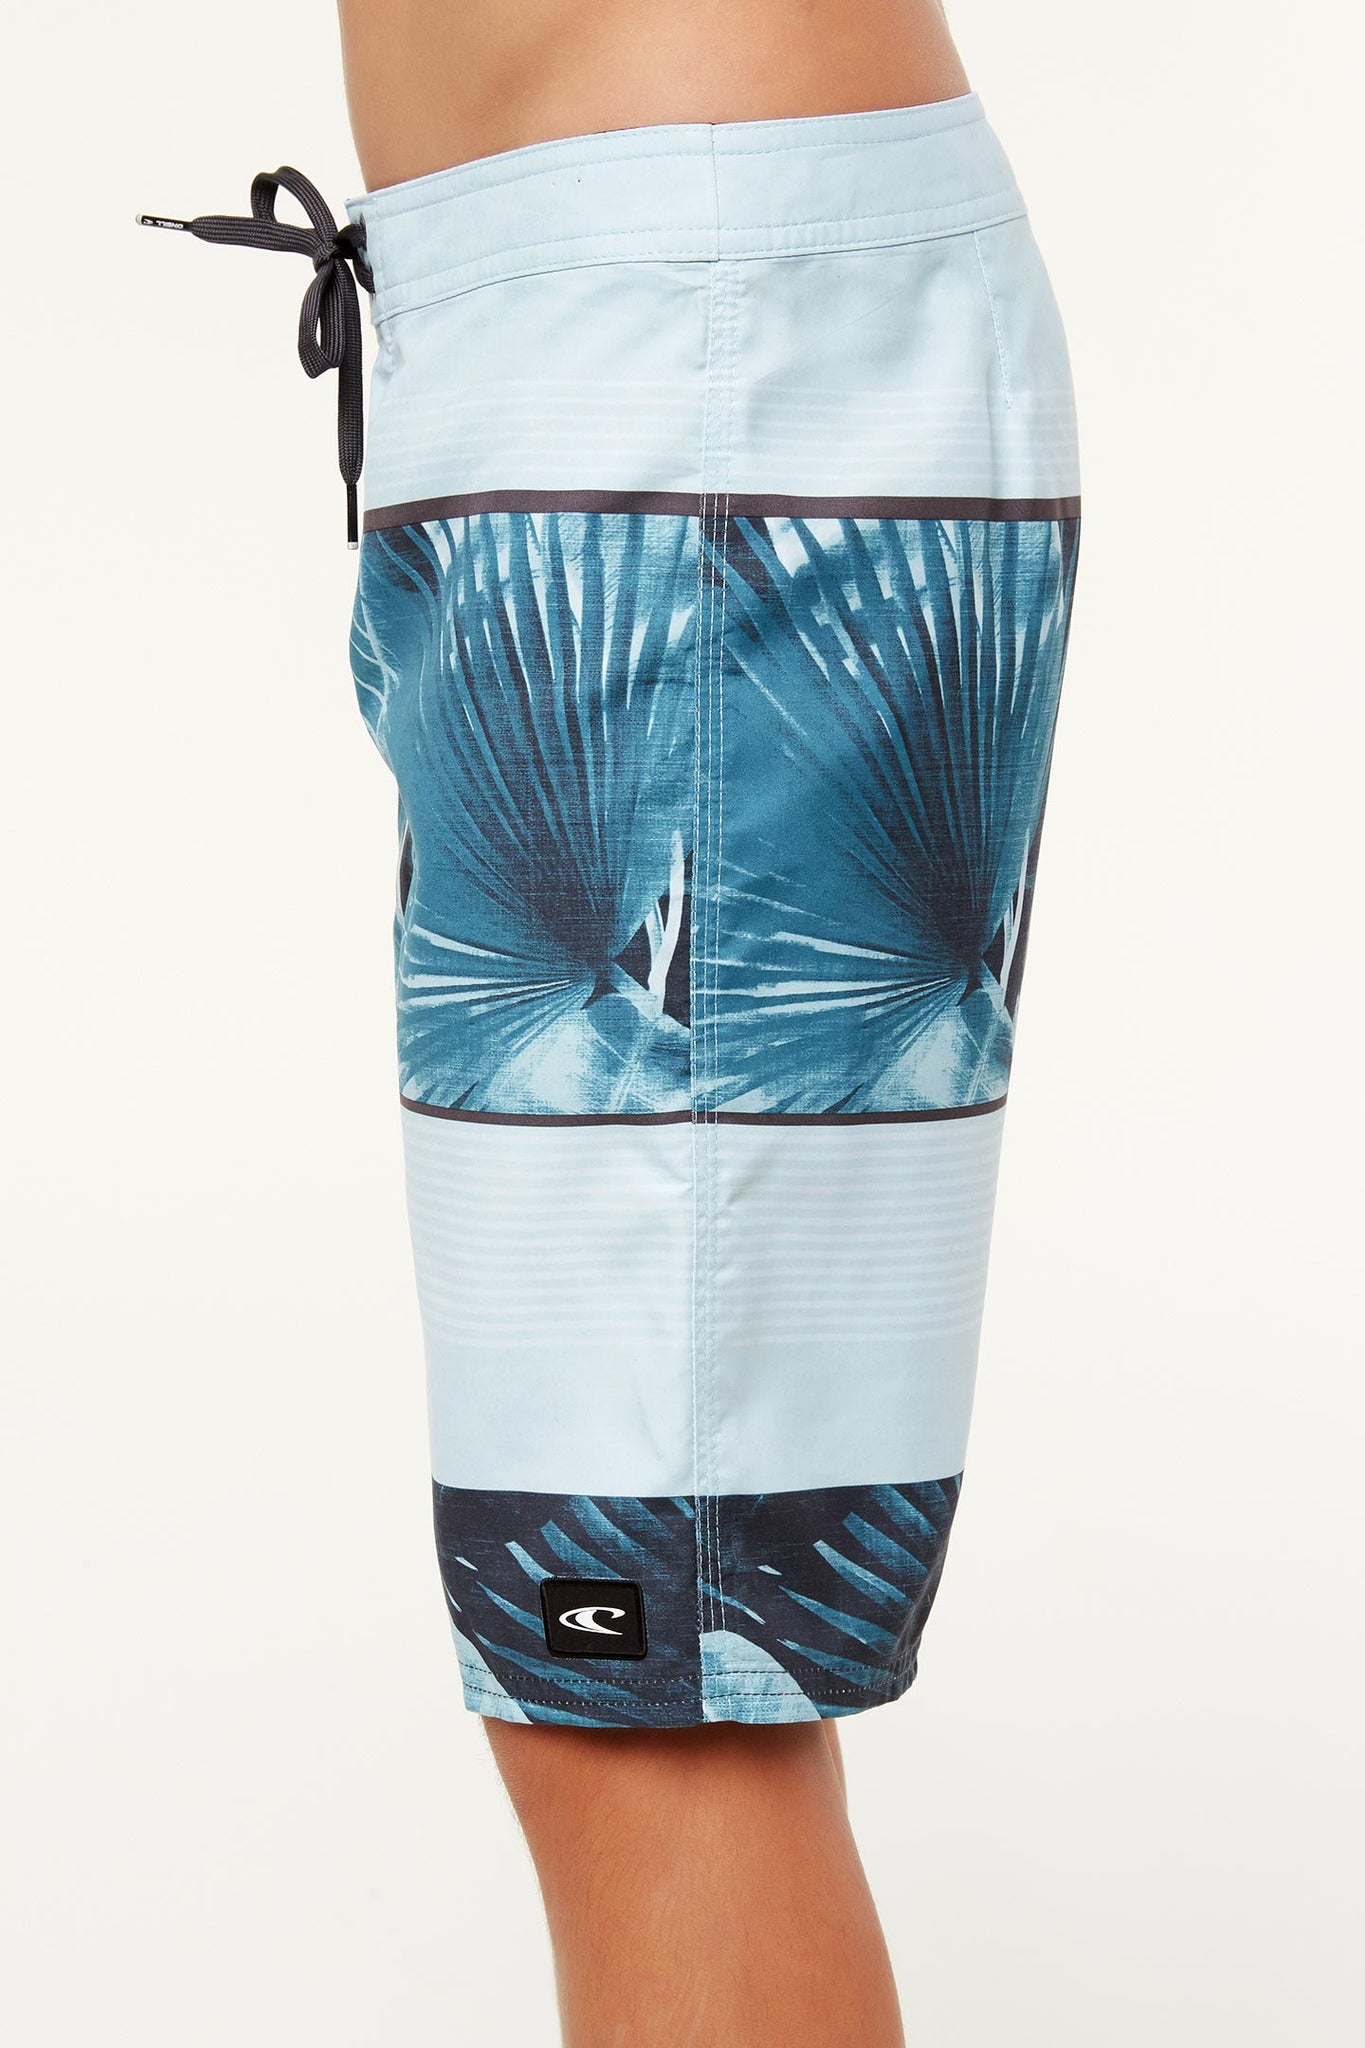 BOYS PALMZ BOARDSHORTS